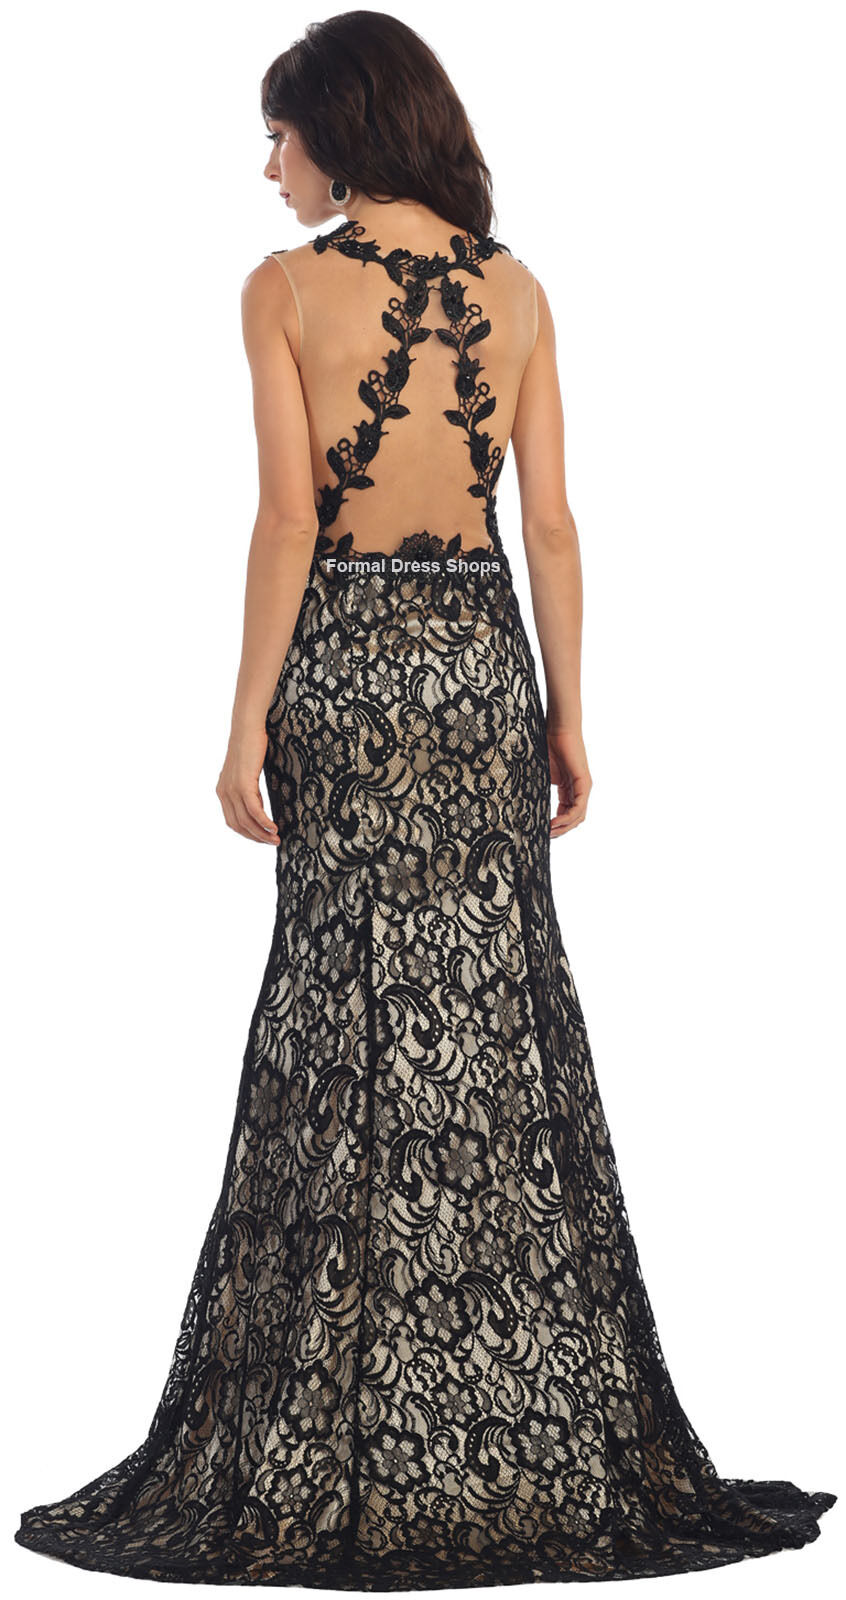 SALE ! NEW FORMAL FITTED EVENING GALA GOWN UNDER $100 ...